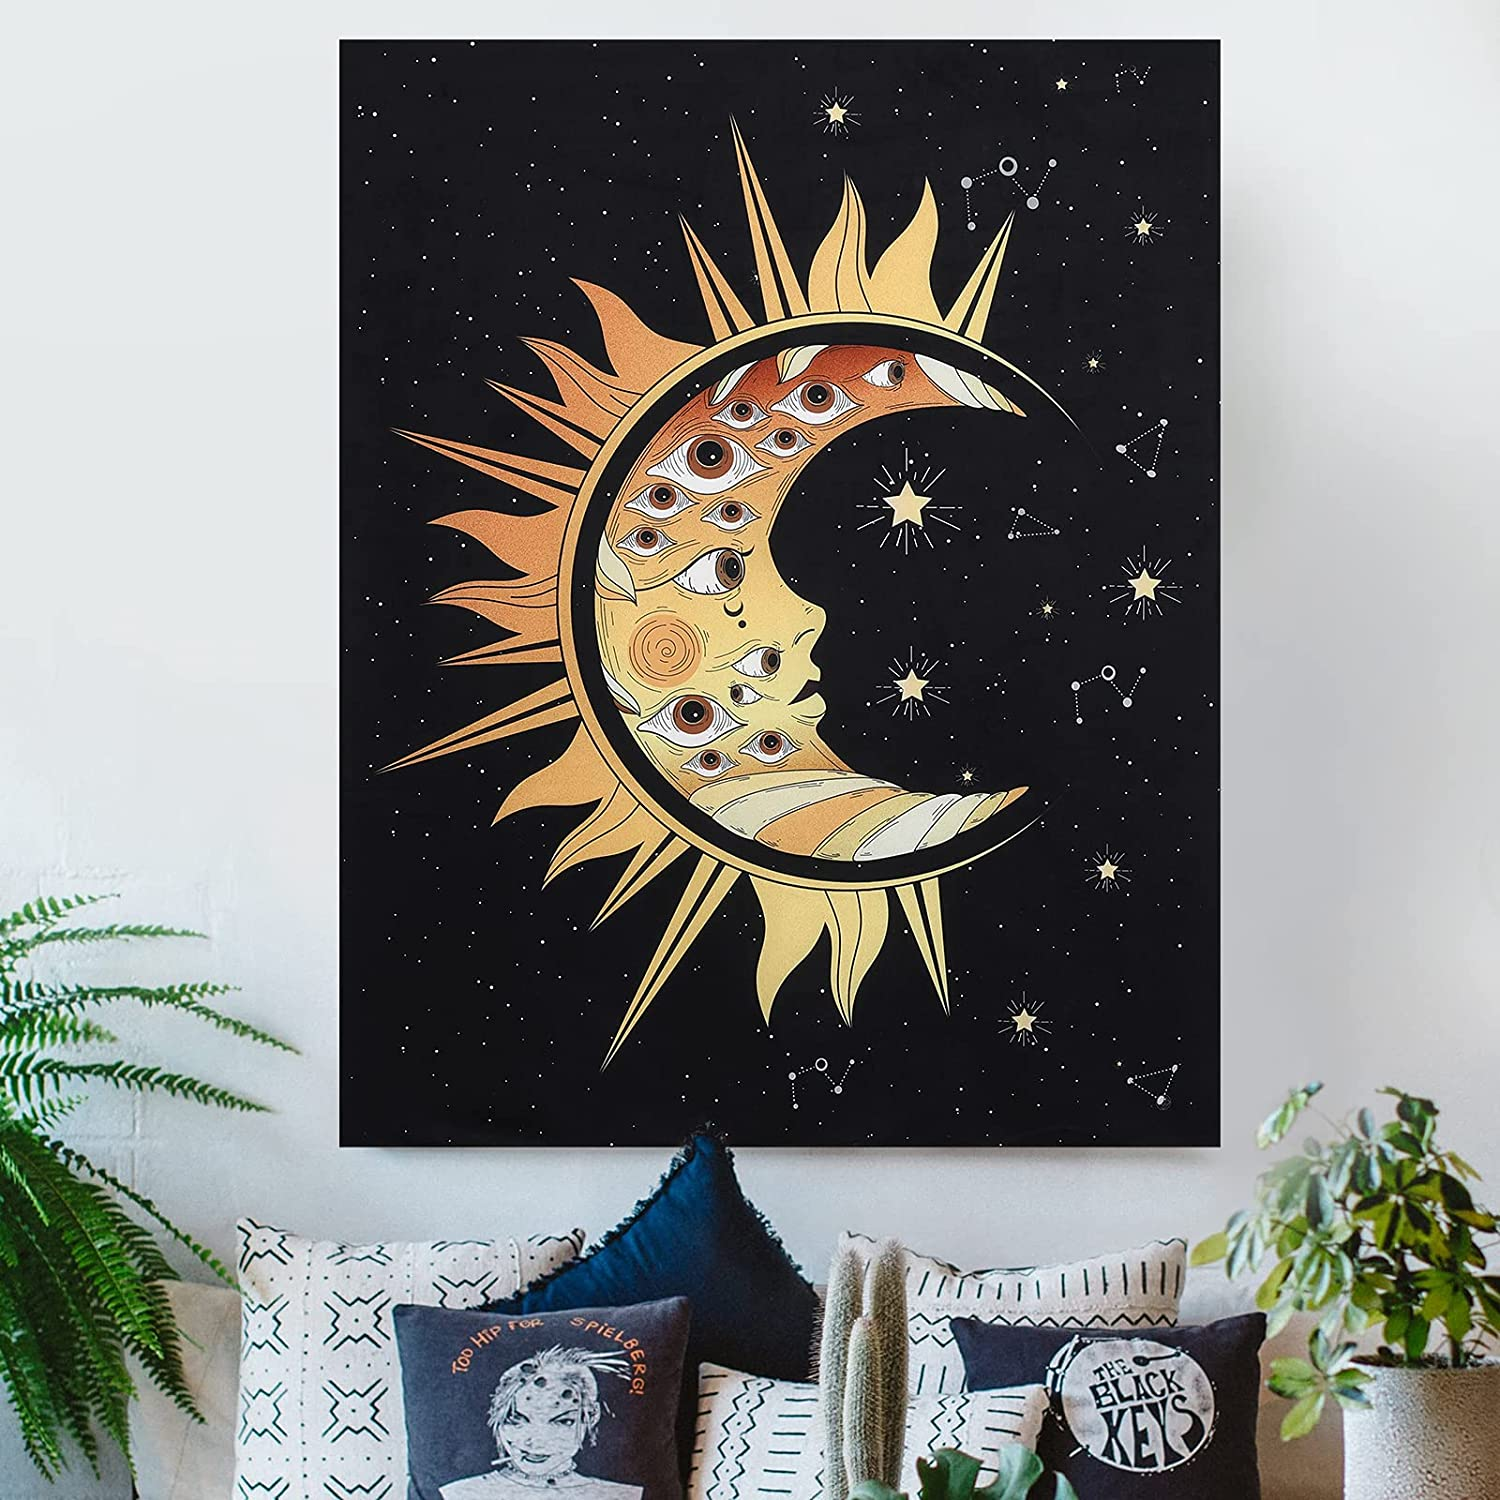 Lourny Large Black Tarot Tapestry - Short Plush Starry Night Sun and Moon Tapestries Wall Hanging Decor for Bedroom Living Room(Eyes, 36